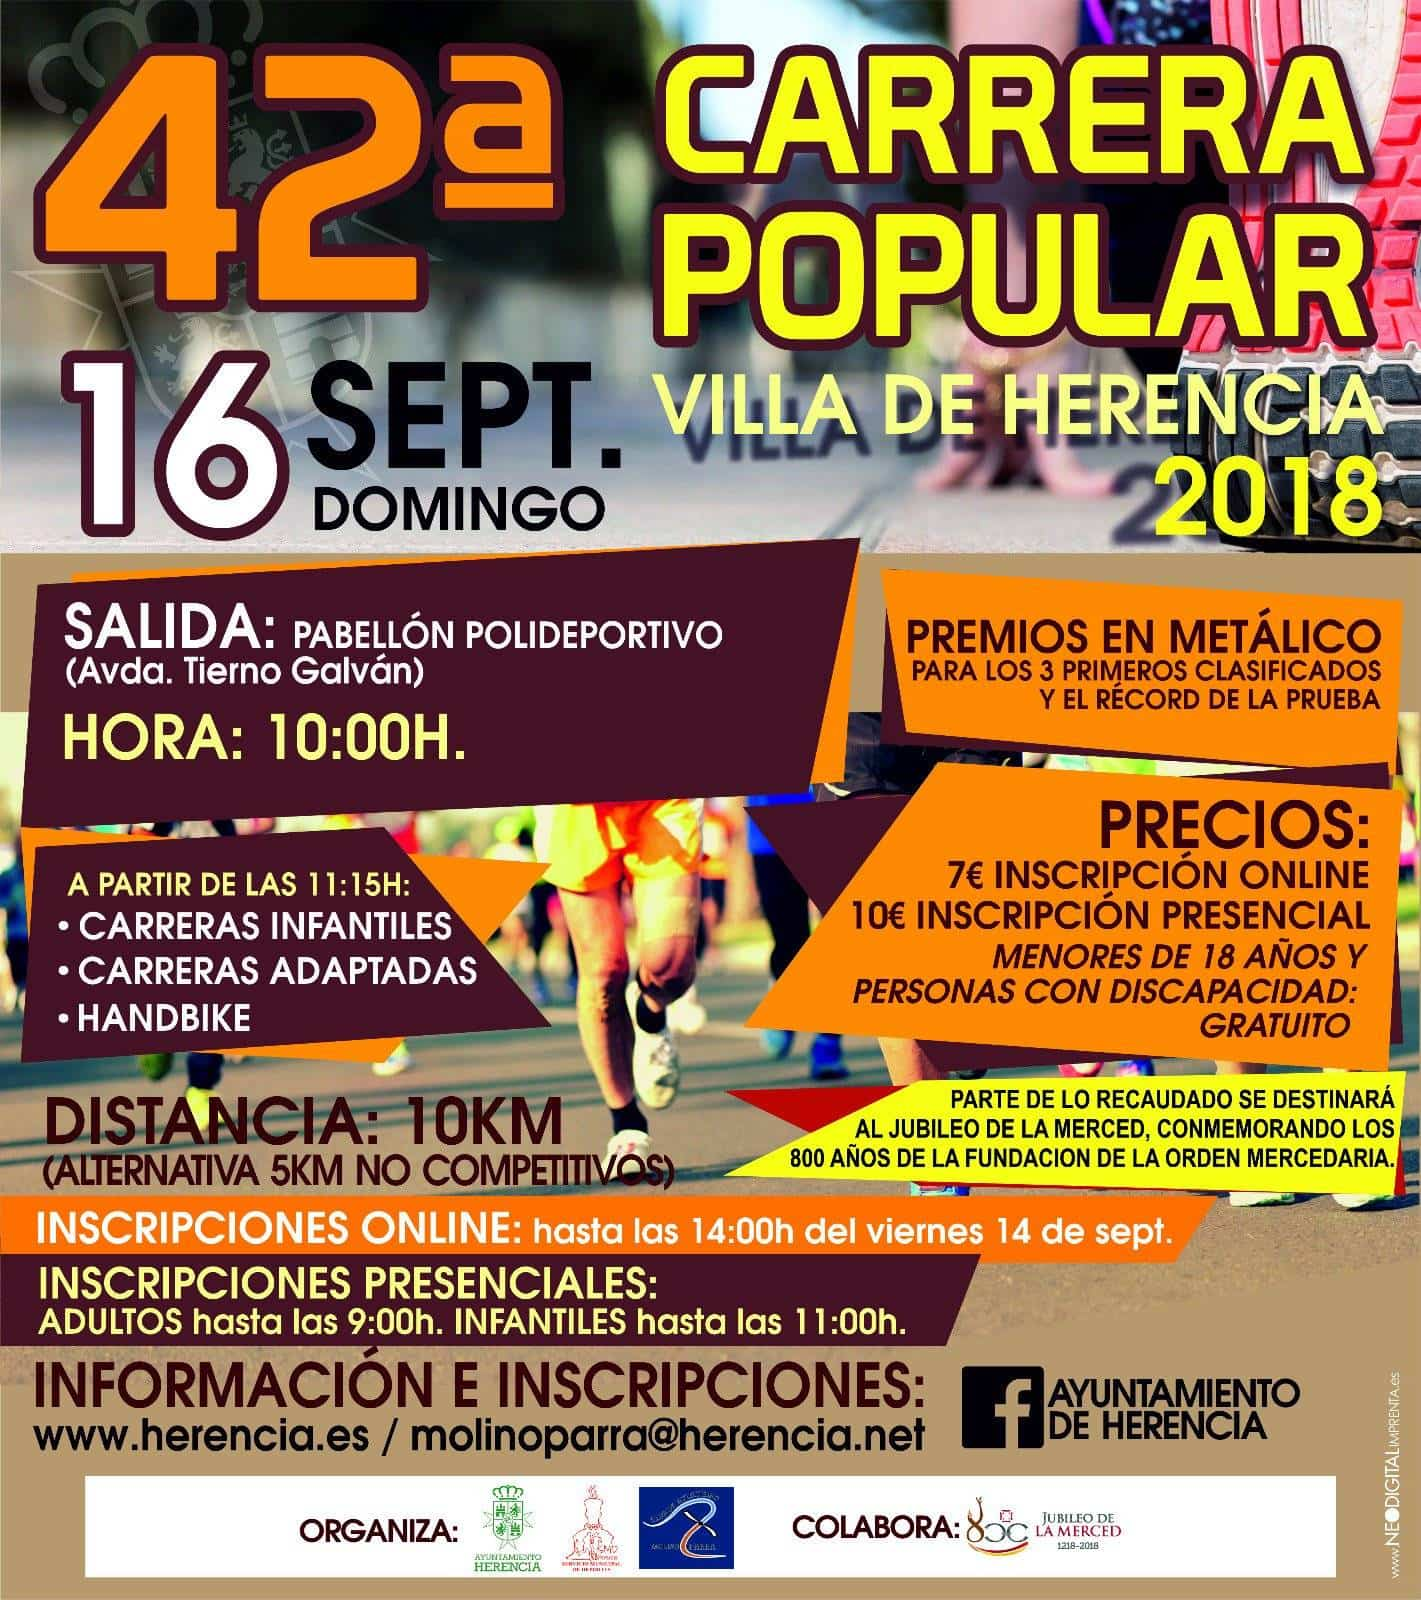 "42 carrera popular villa herencia 2018 - Presentada la 42 Carrera Popular ""Villa de Herencia"""